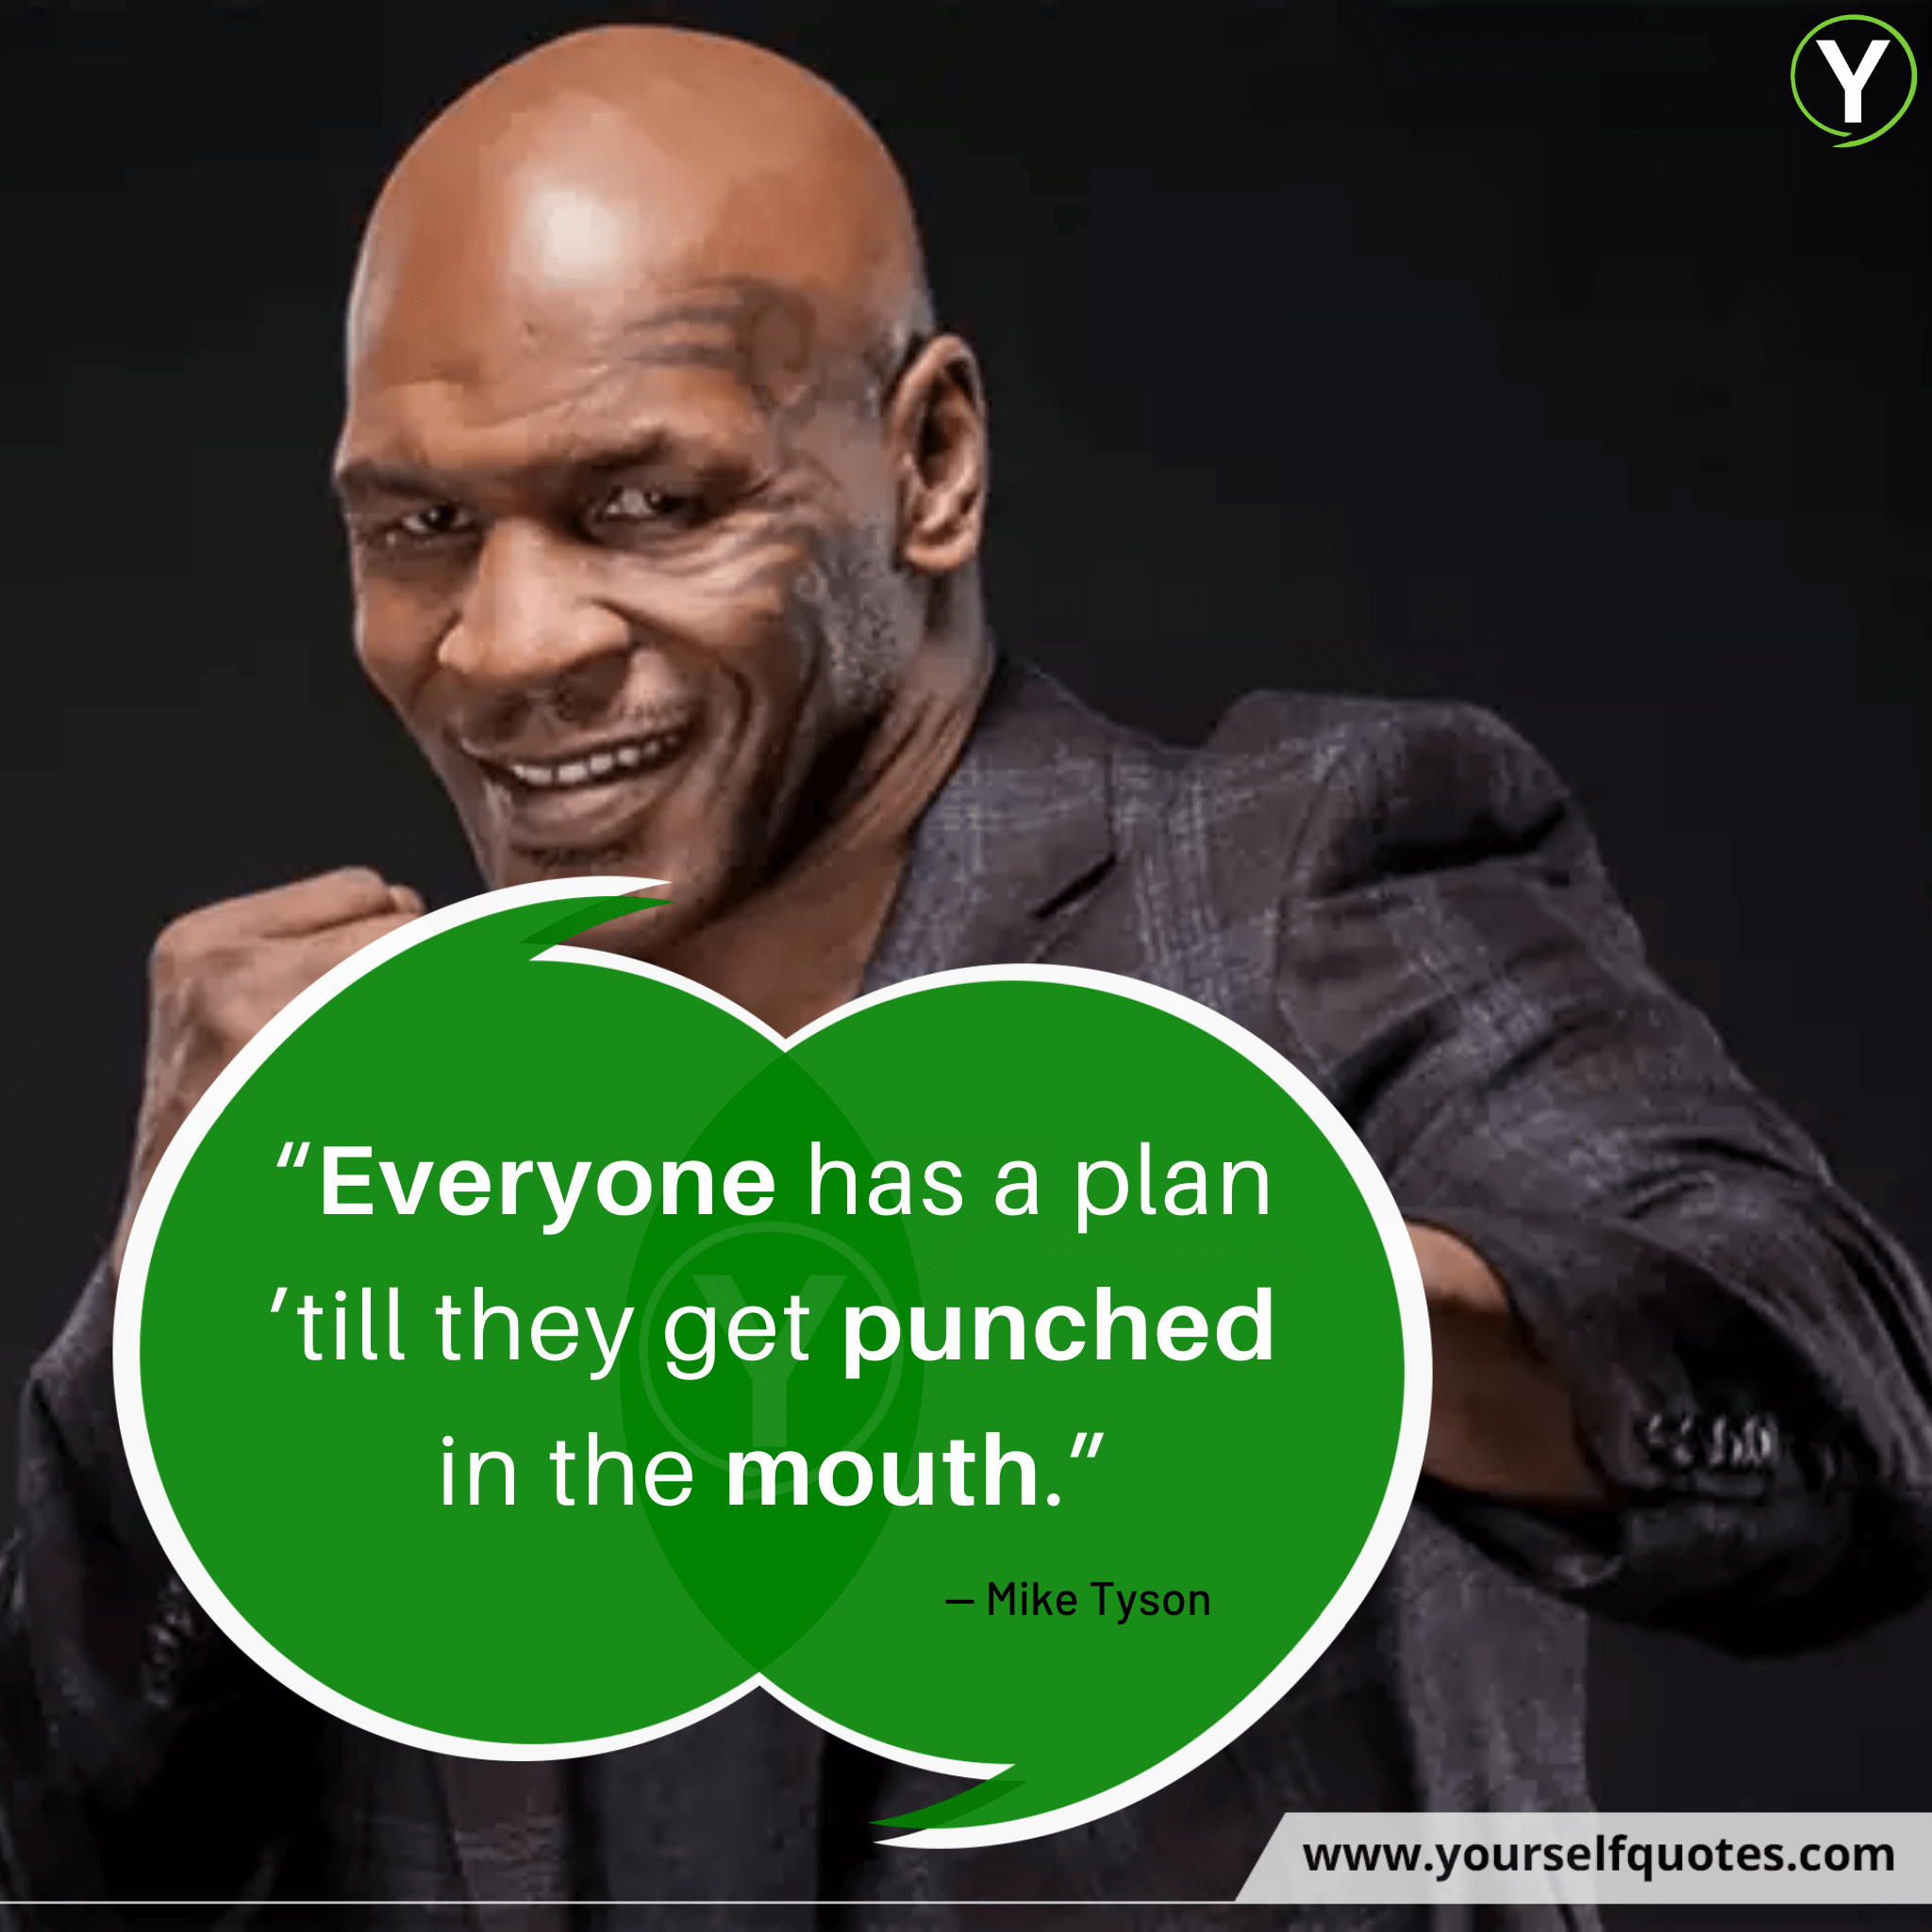 Best Mike Tyson Quotes